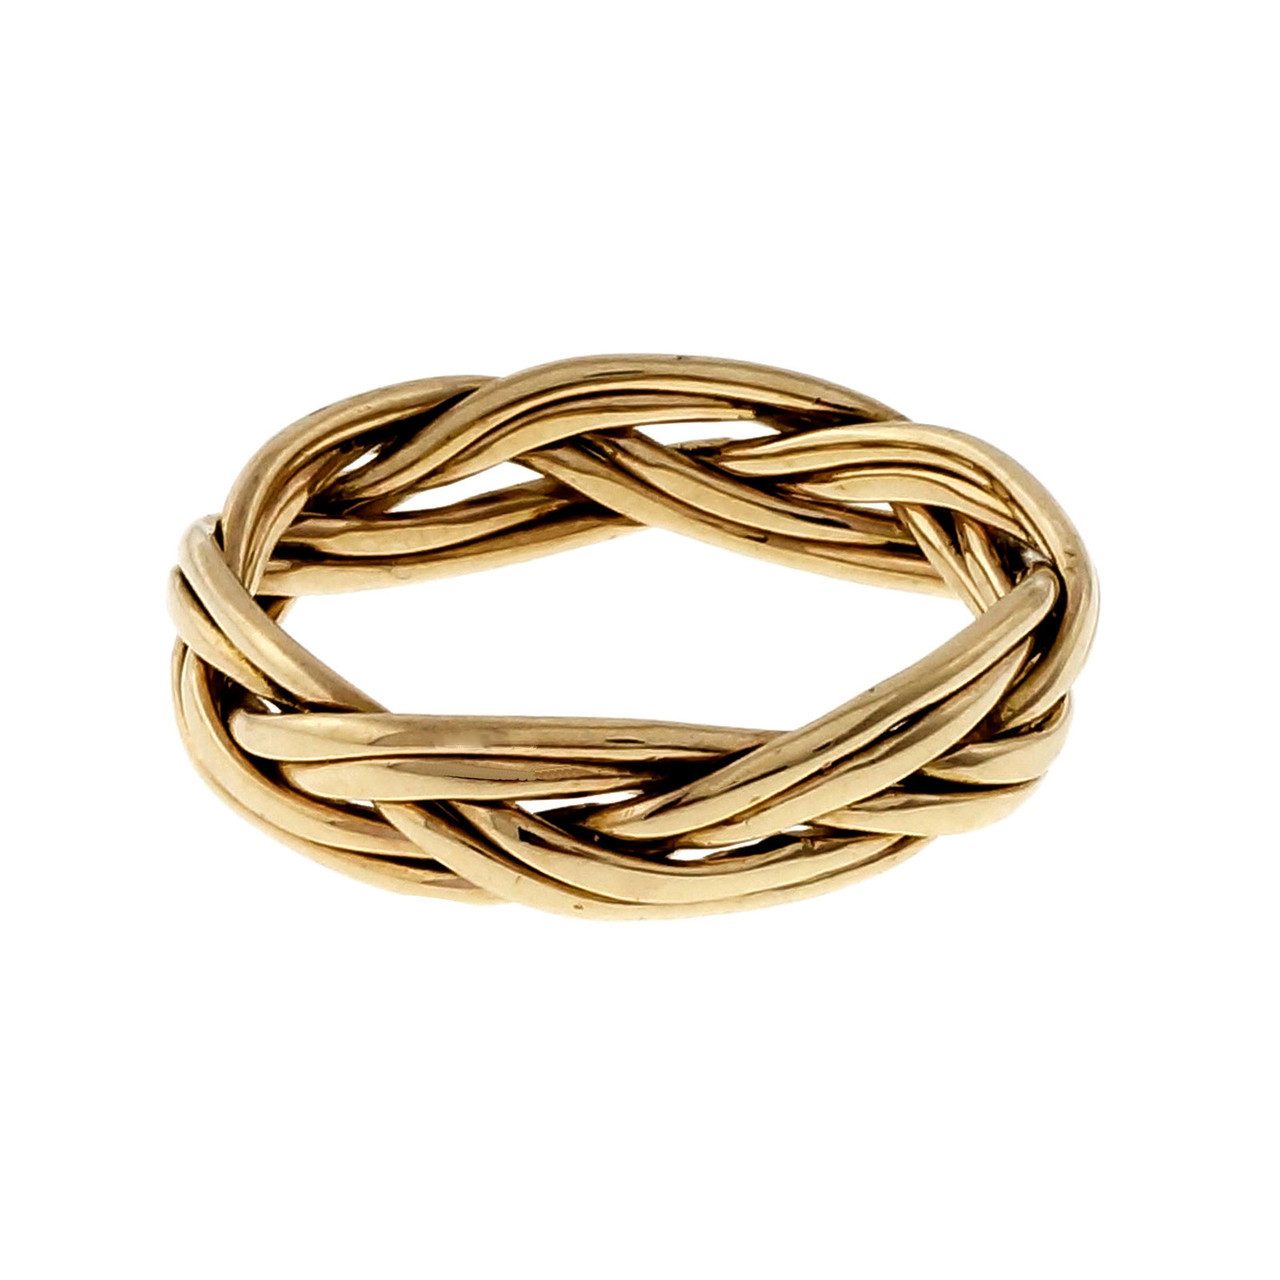 hight resolution of estate hand braided wire wedding band ring 14k yellow gold petersuchyjewelers